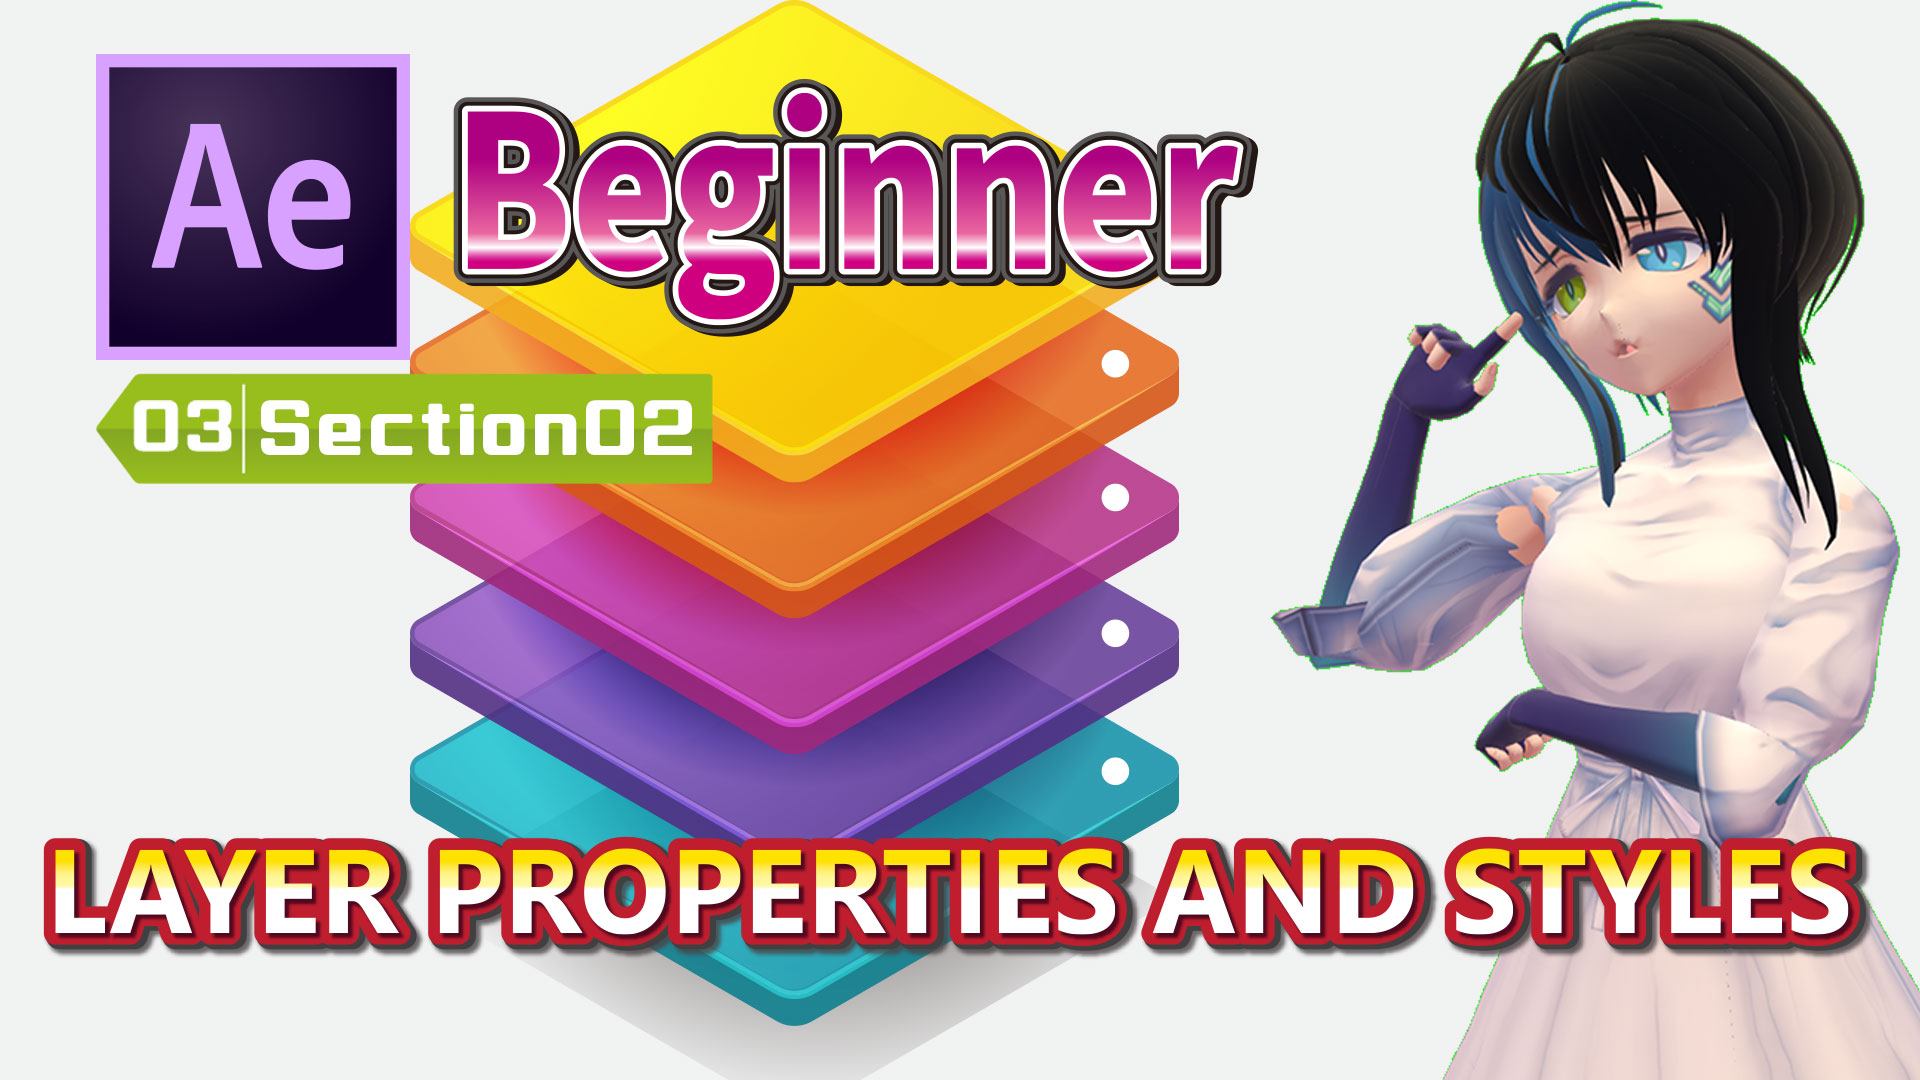 LAYER PROPERTIES AND STYLES